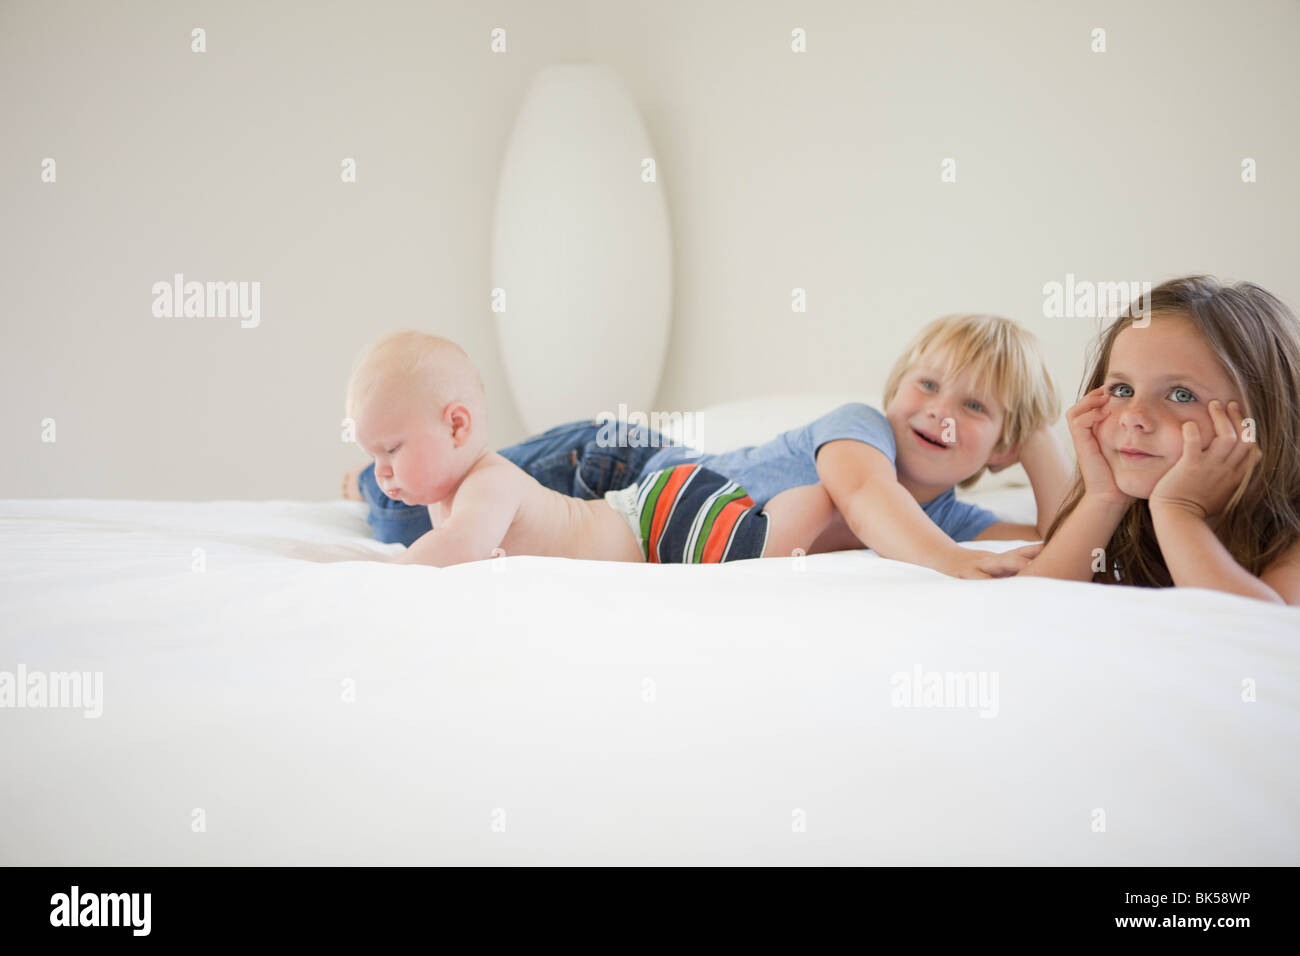 Siblings lounging on white bed - Stock Image